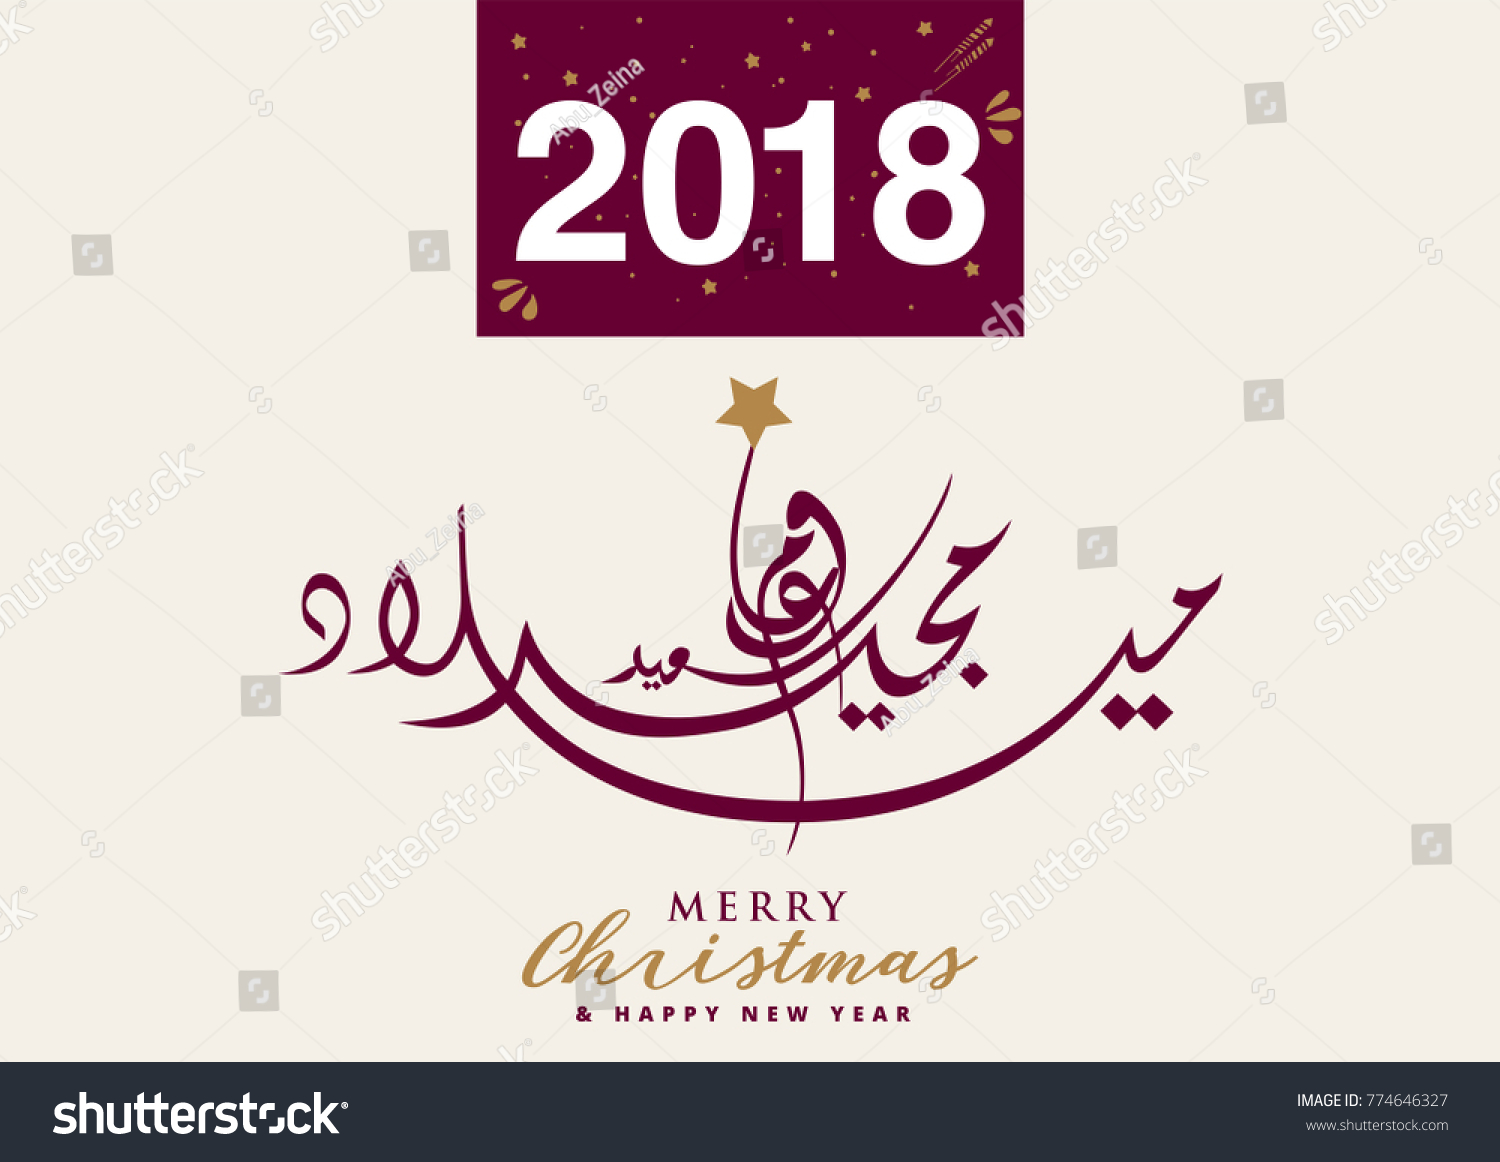 Merry Christmas Happy 2018 New Year Stock Vector Royalty Free